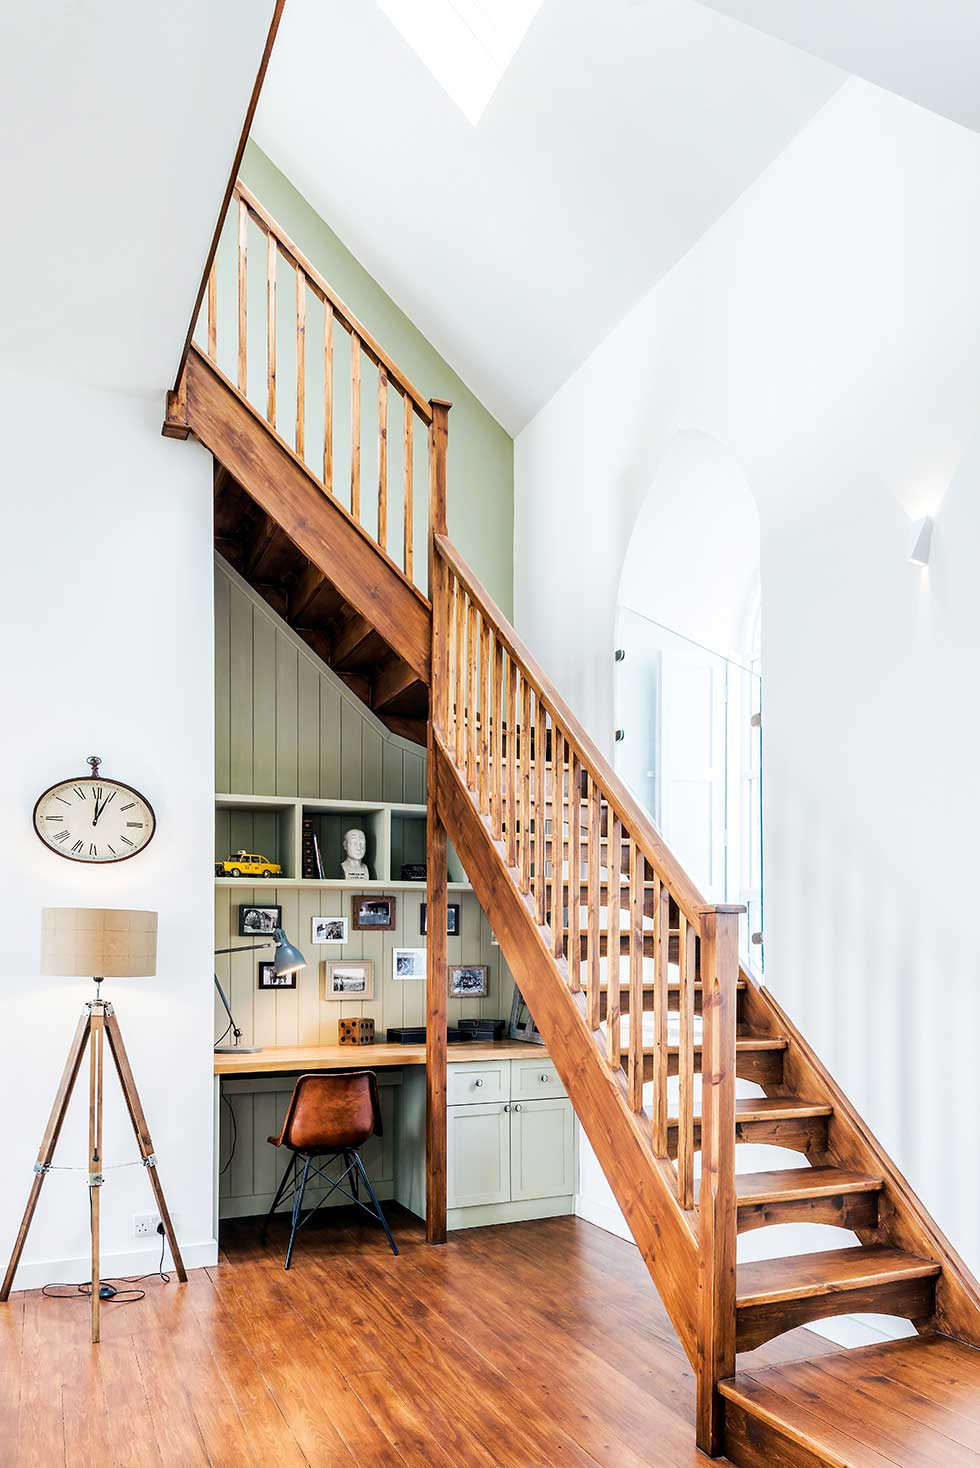 camenzind-converted-chapel-wood-stairs